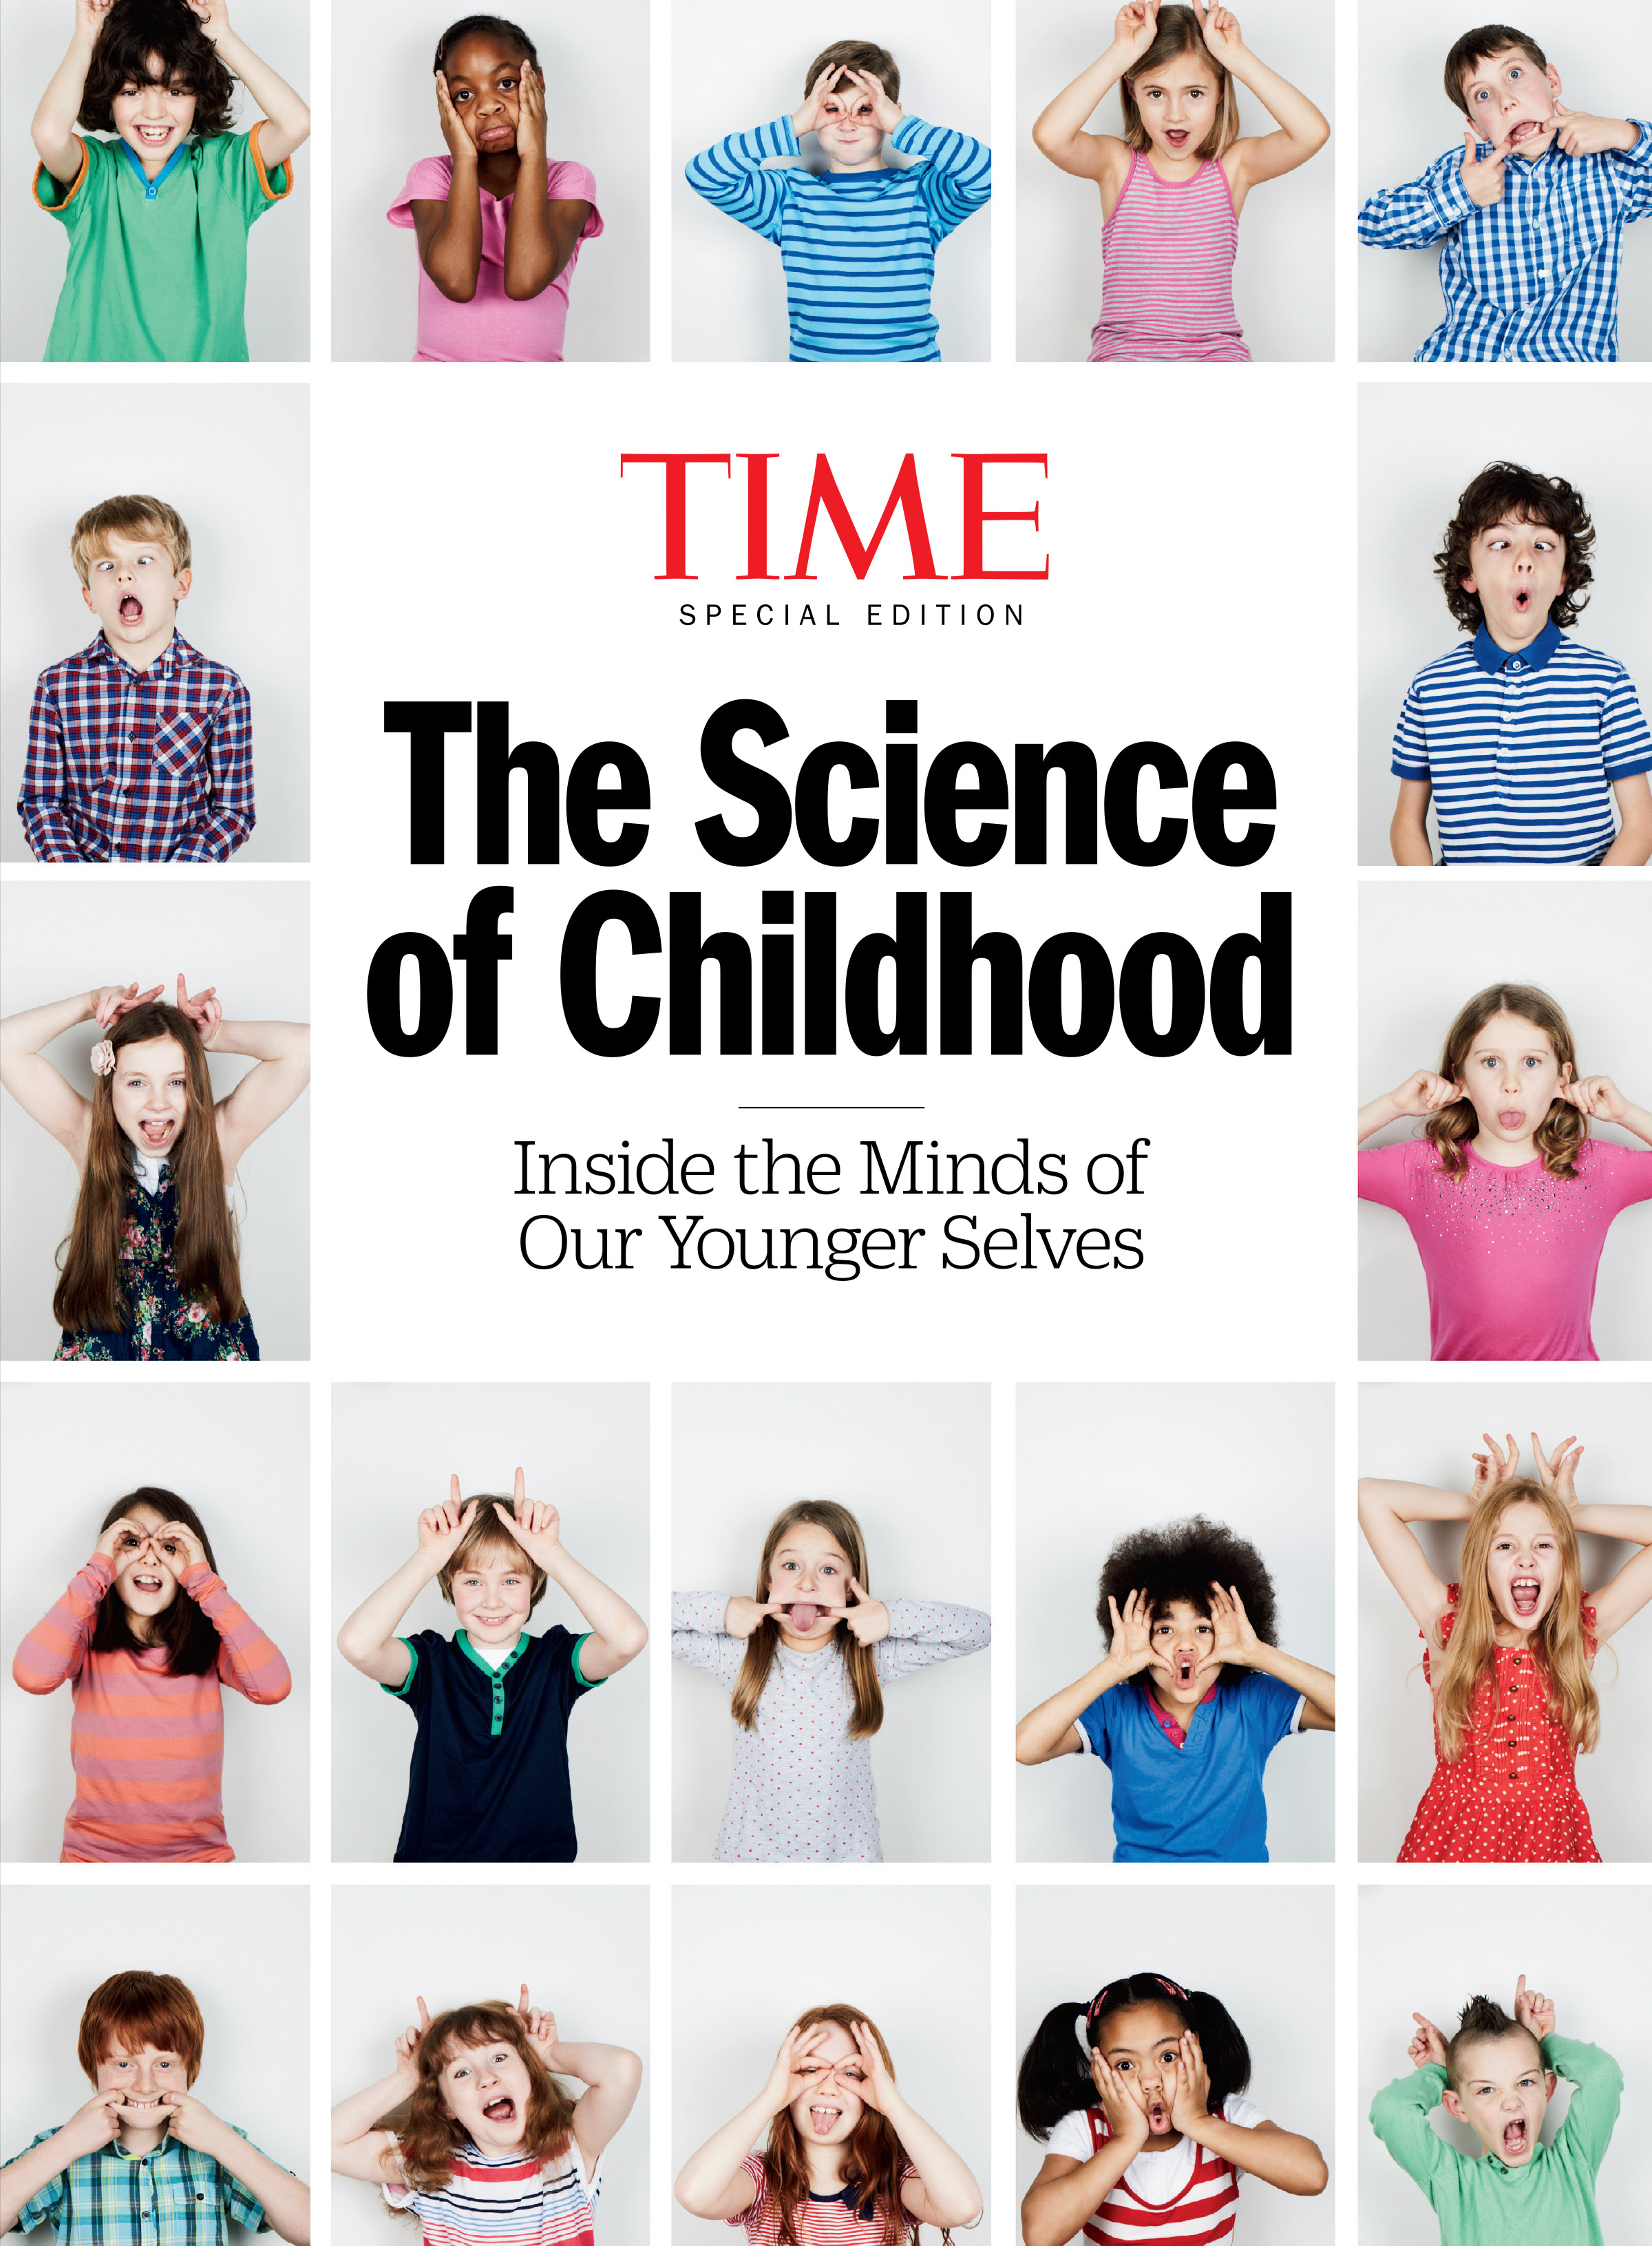 kids and childhood: the secret power of play Kids and Childhood: The Secret Power of Play timesciencechildhood2017baz cover1